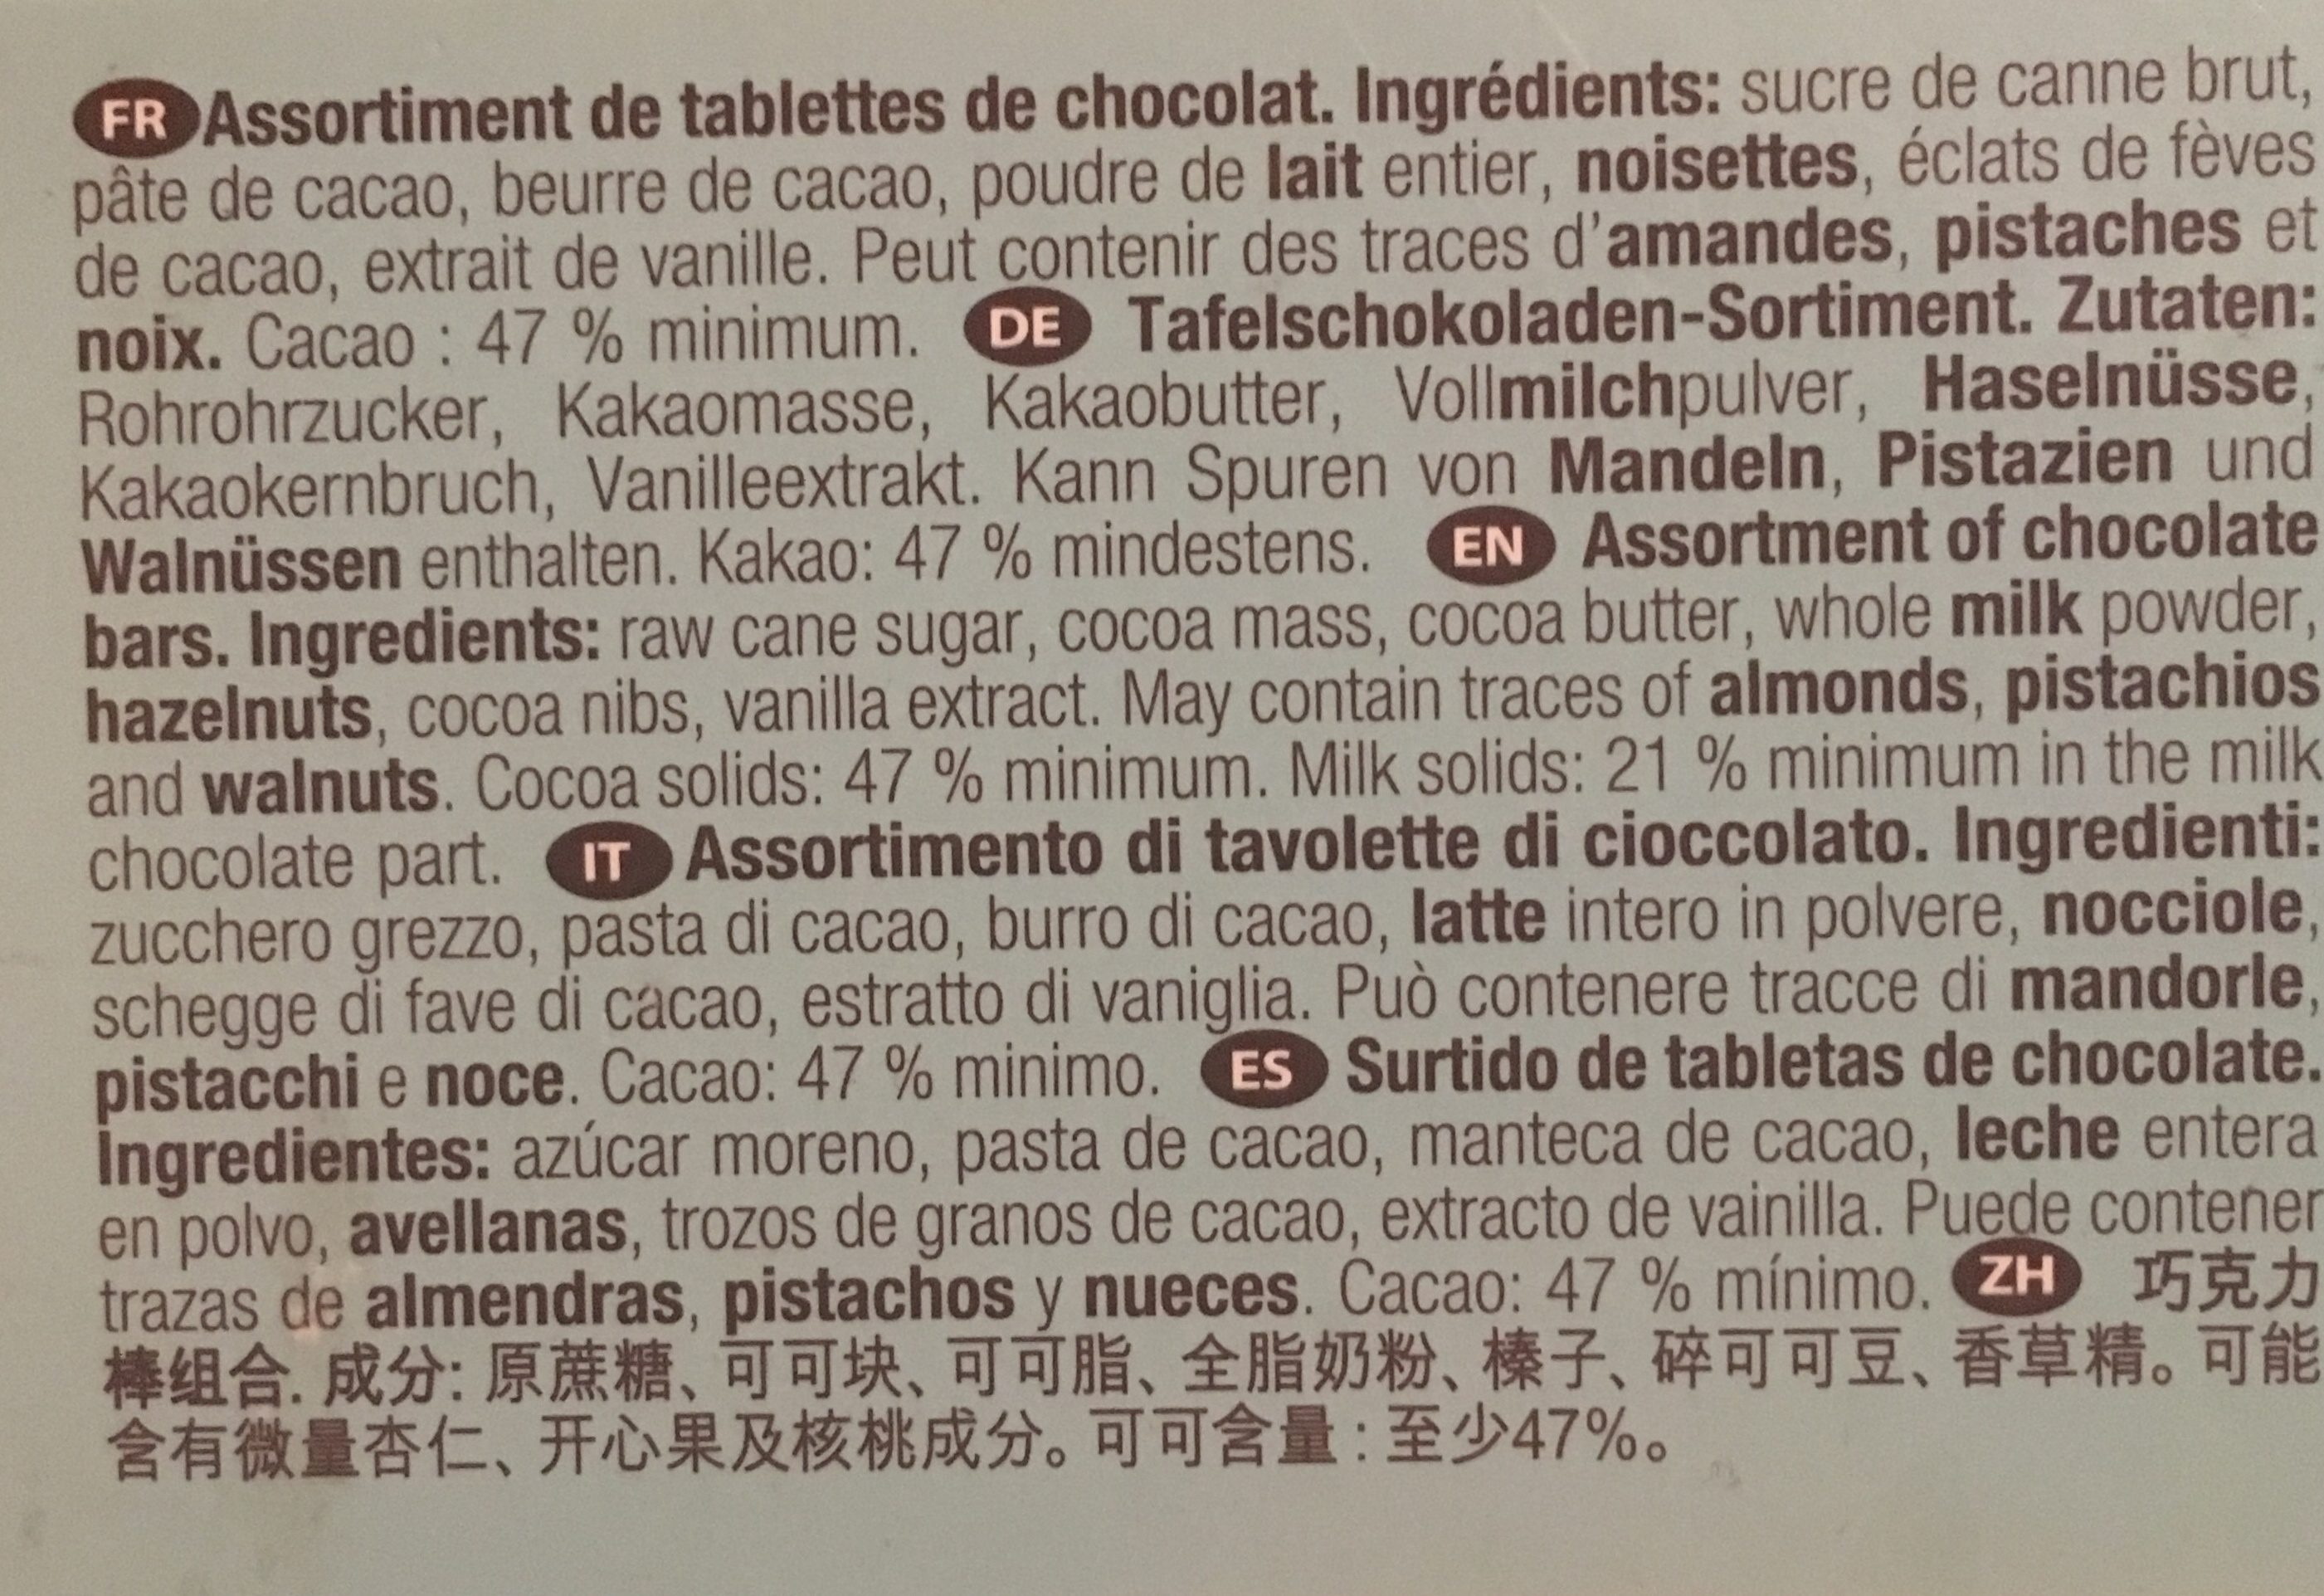 Assortiment De Tablettes De Chocolat - Ingredients